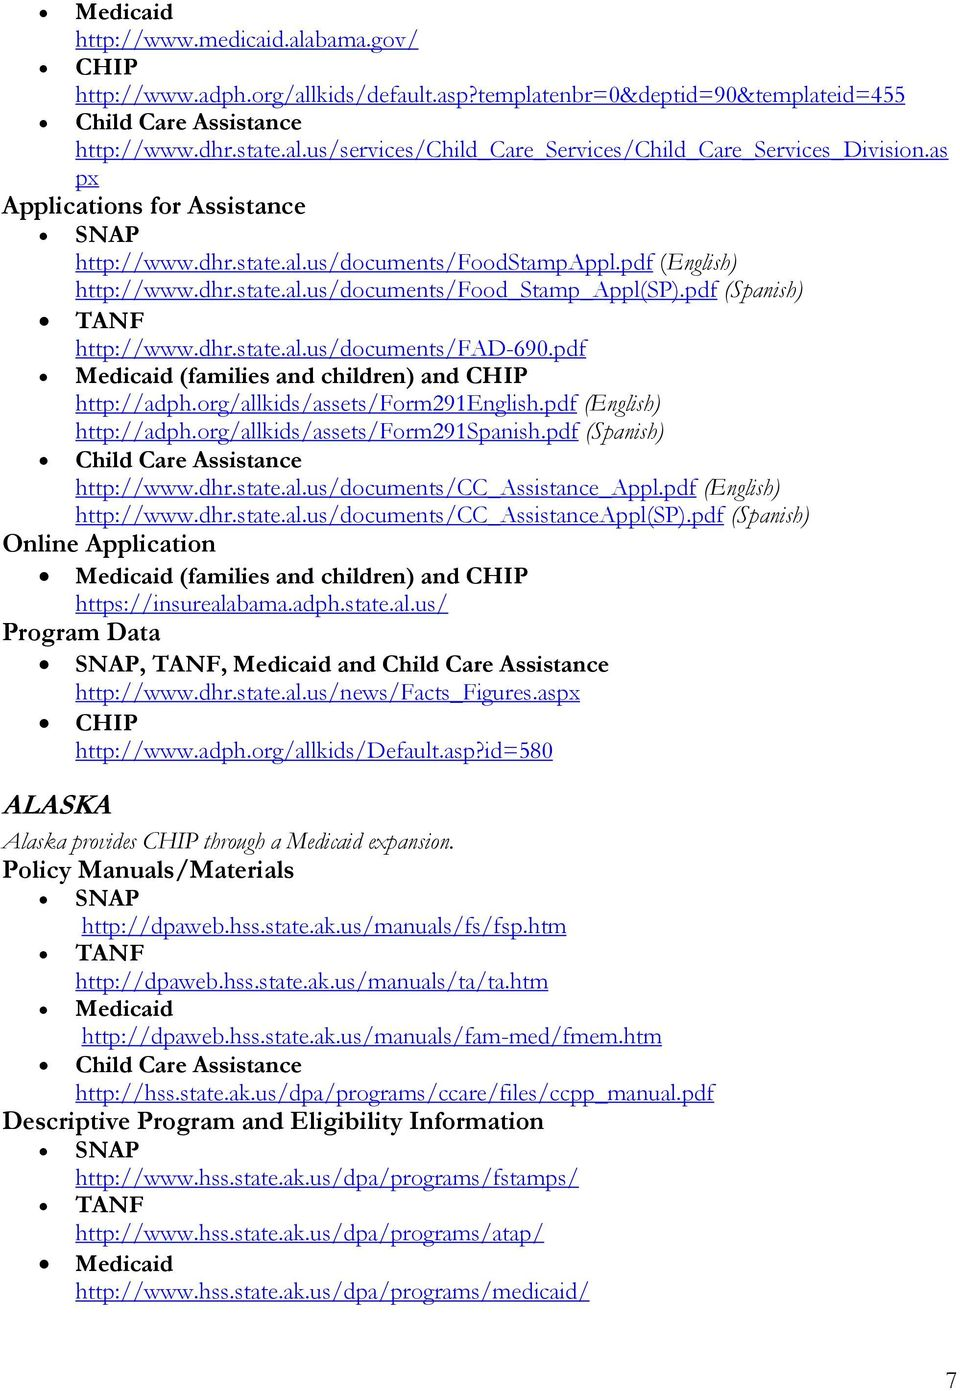 pdf (families and children) and CHIP http://adph.org/allkids/assets/form291english.pdf (English) http://adph.org/allkids/assets/form291spanish.pdf (Spanish) http://www.dhr.state.al.us/documents/cc_assistance_appl.